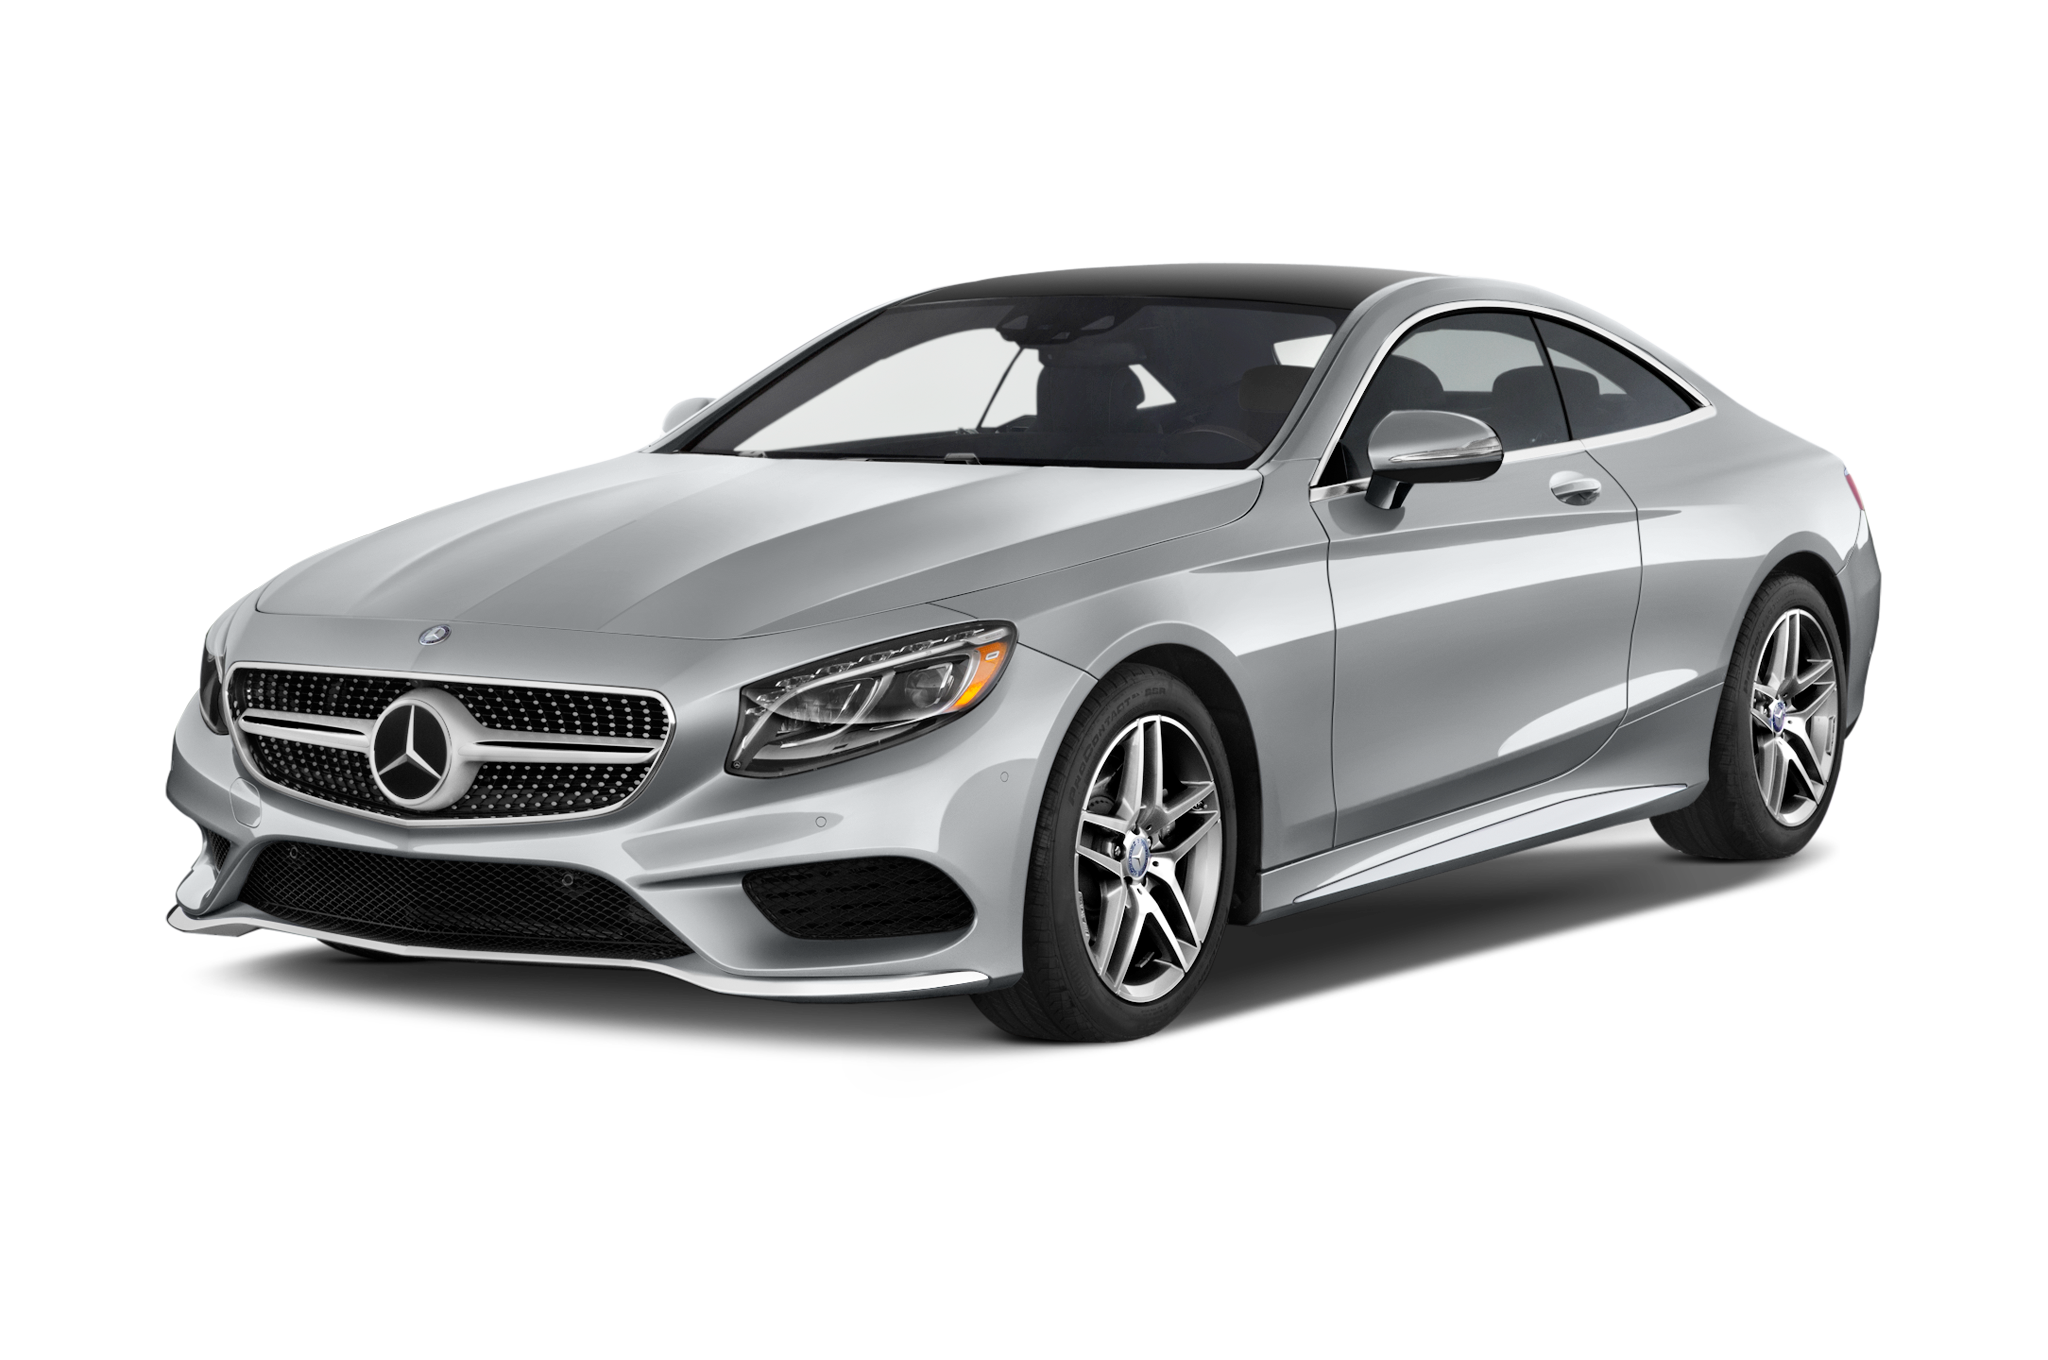 http://st.automobilemag.com/uploads/sites/10/2015/11/2015-mercedes-benz-s-class-550-coupe-angular-front.png?interpolation=lanczos-none&fit=around|300:199